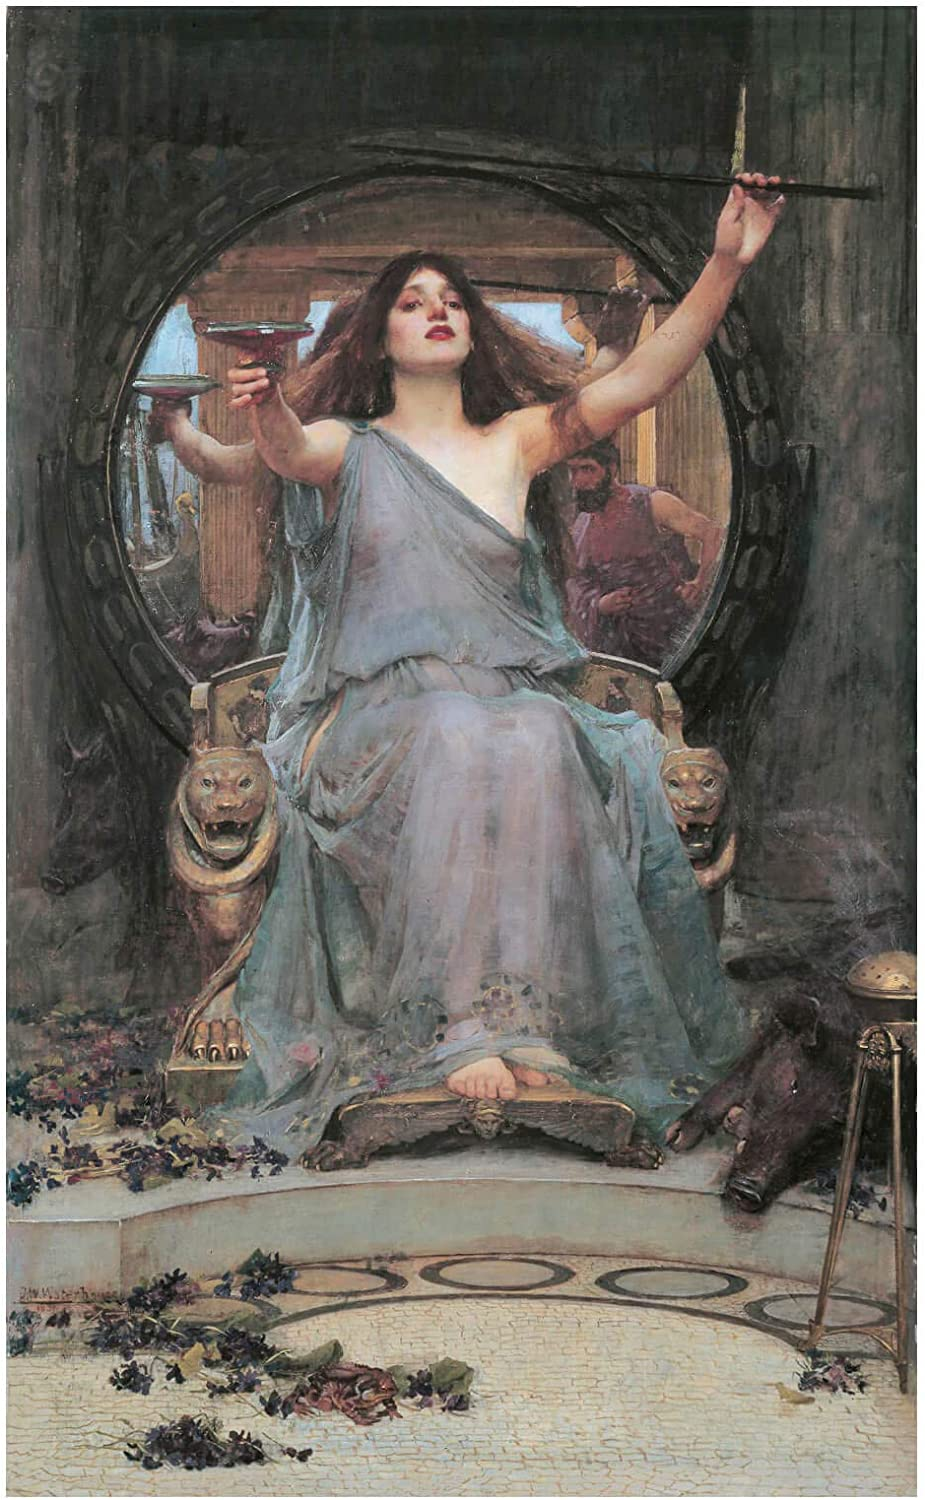 Spiffing Prints John William Waterhouse Raleigh Mall Offering to Cup unisex - Circe